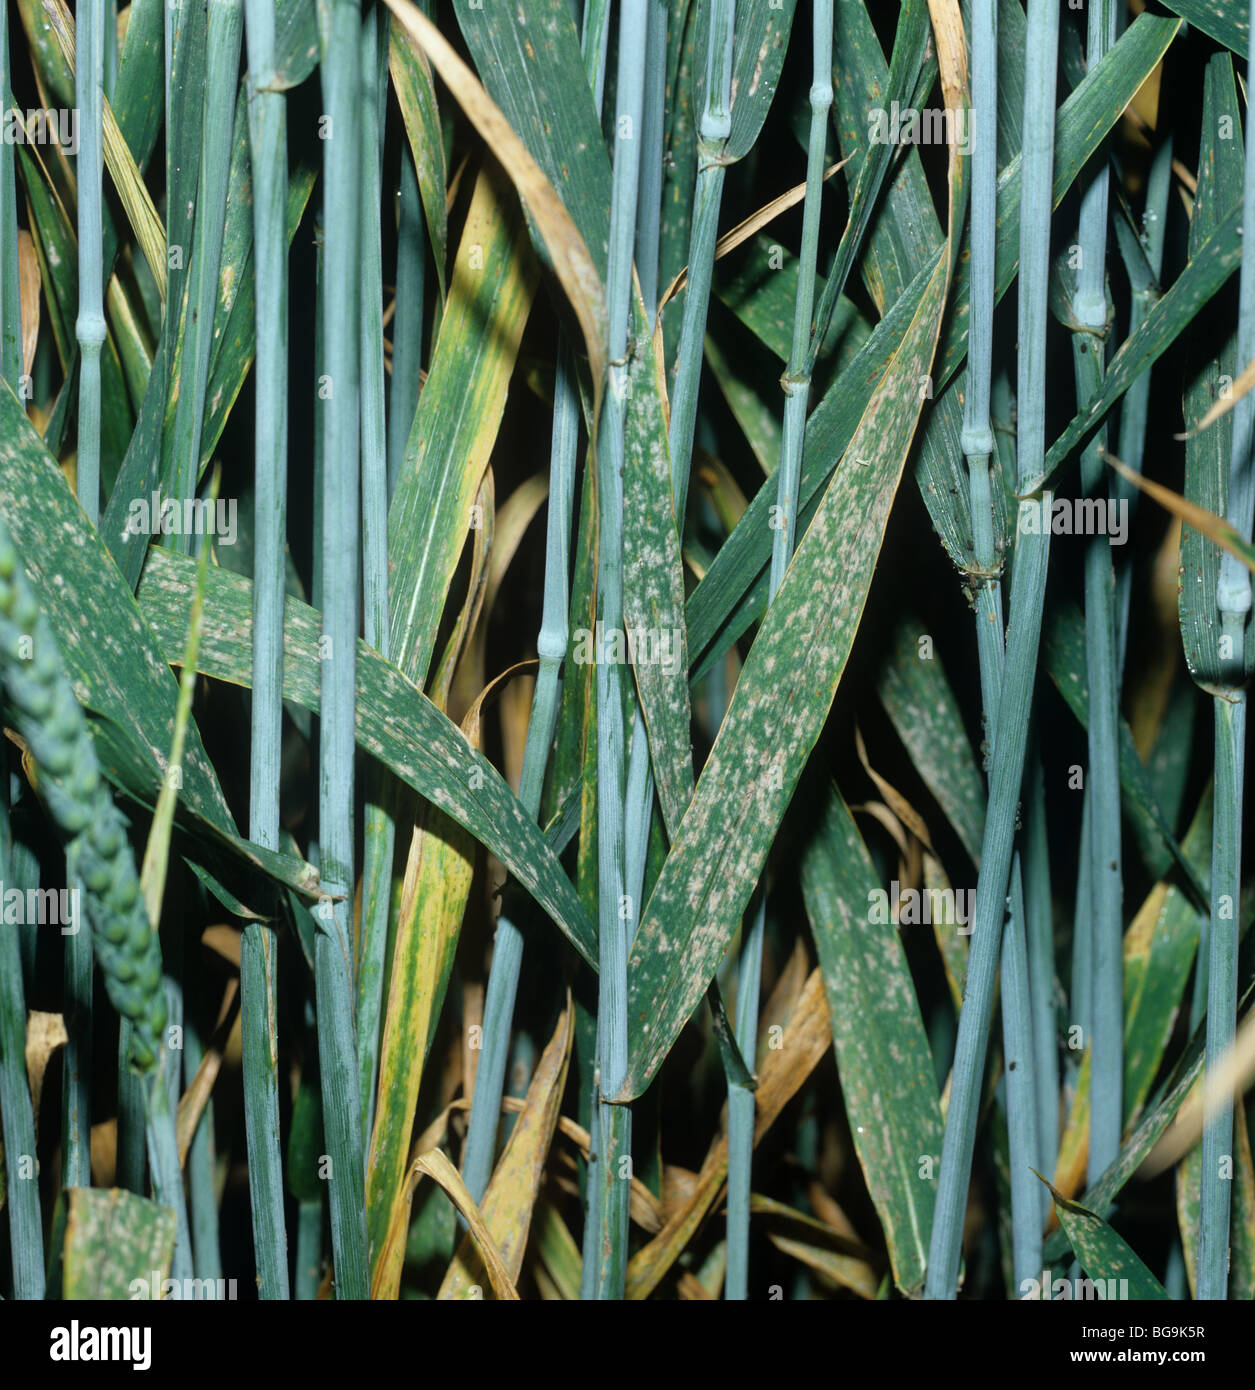 Powdery mildew (Erysiphe graminis) infection on a mature wheat crop - Stock Image